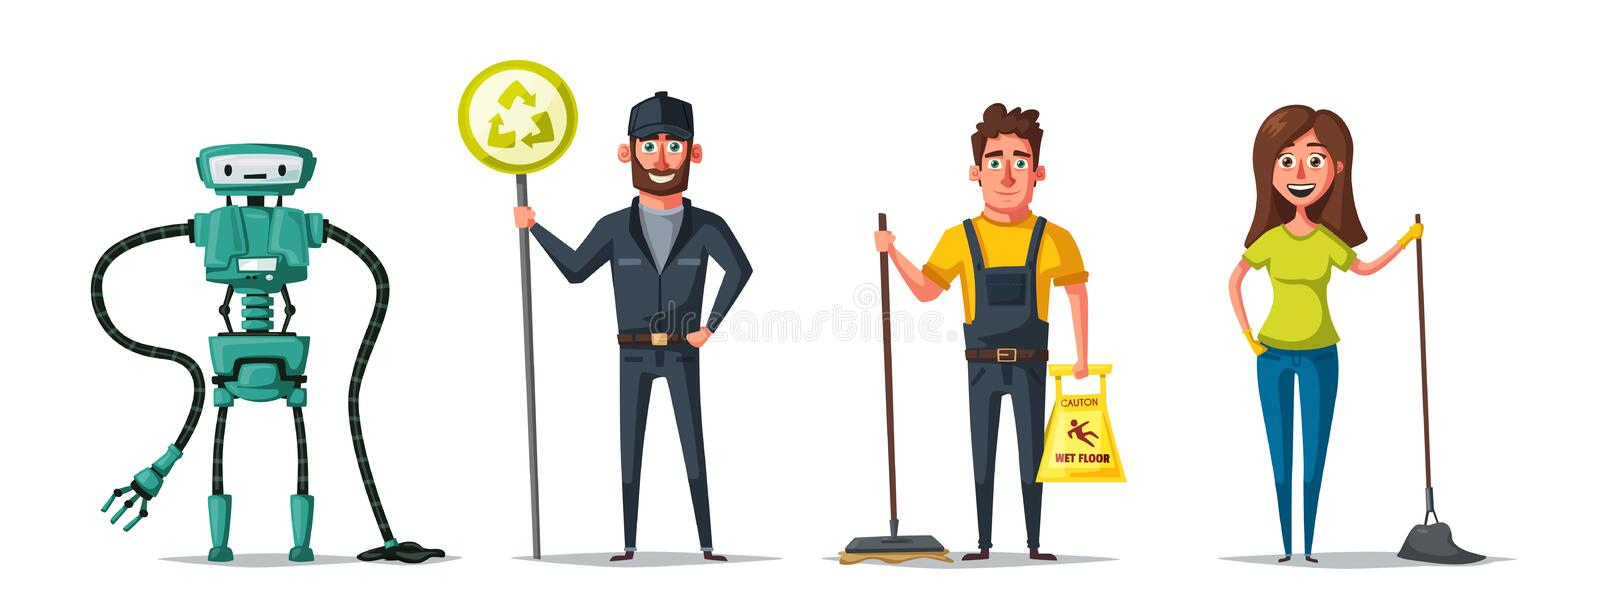 Cleaning staff character with equipment. Cartoon vector illustration. stock illustration